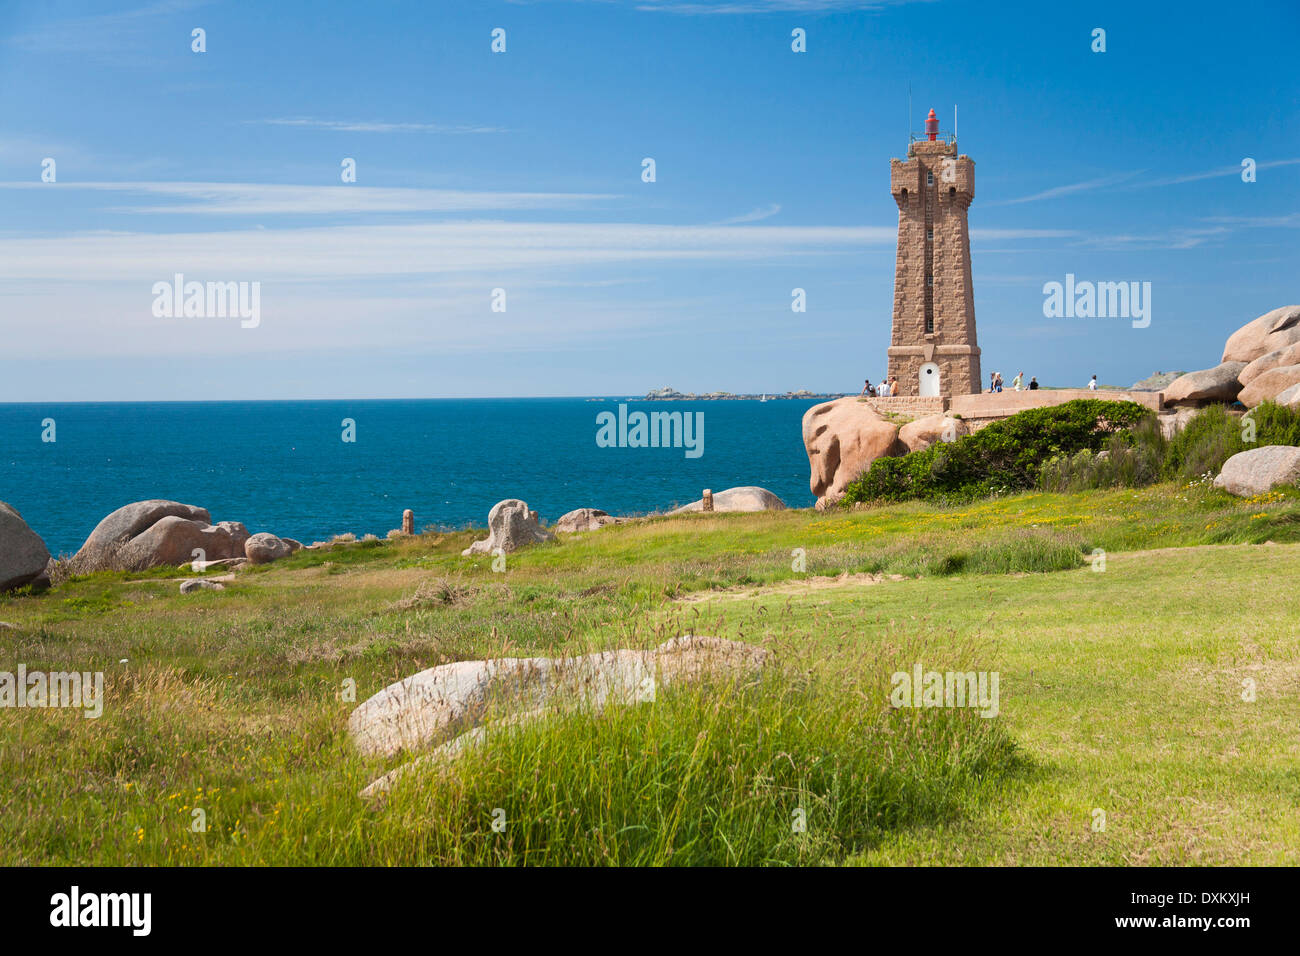 France, Brittany, Bretagne, Perros-Guirec, Ploumanach lighthouse. Stock Photo